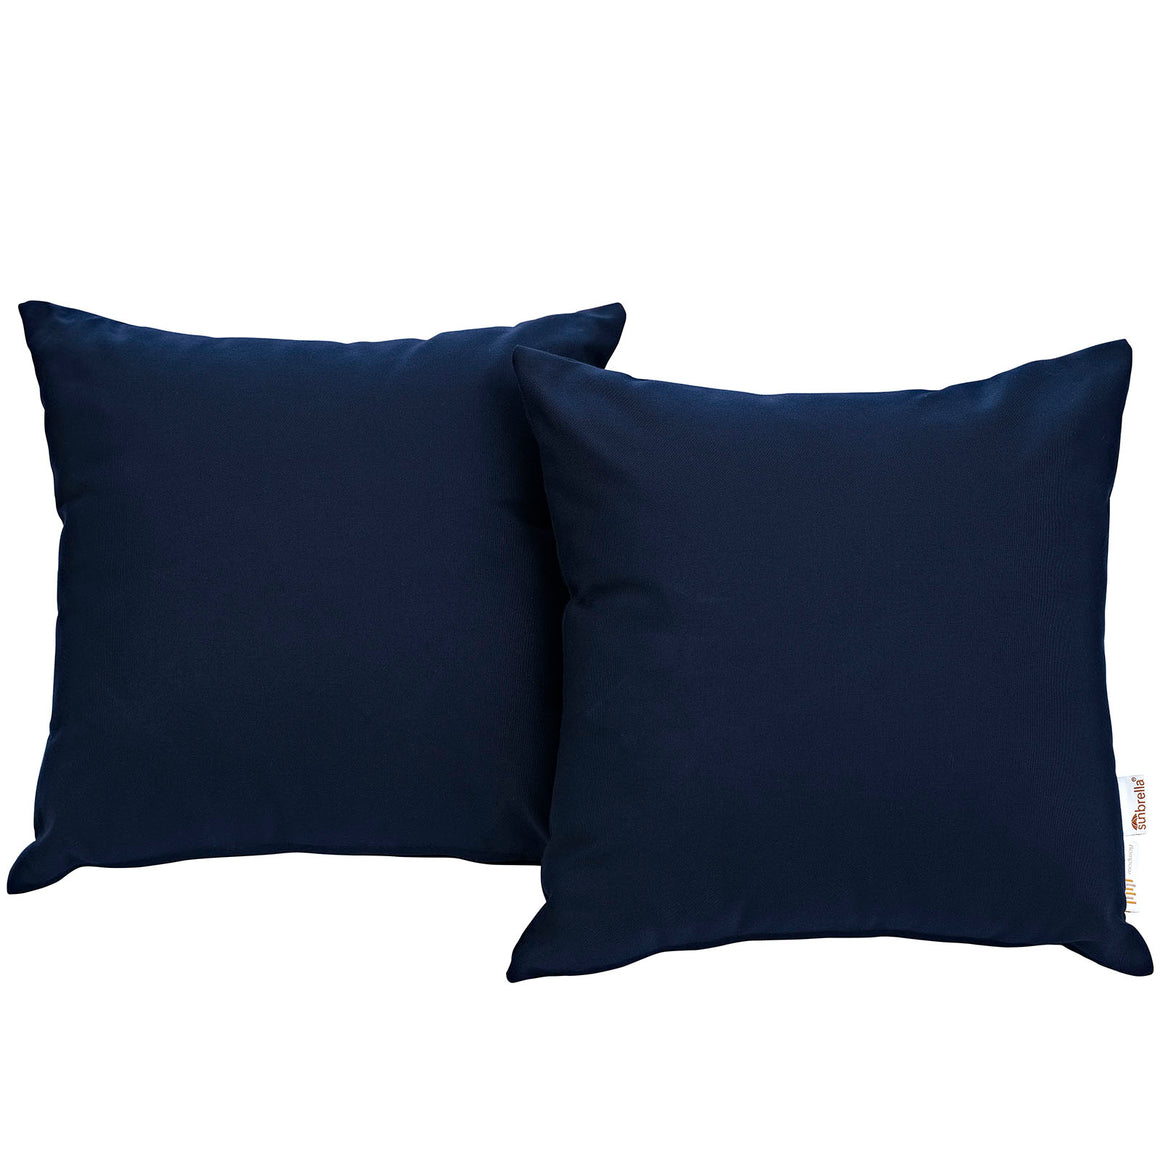 Summon 2 Piece Outdoor Patio Pillow Set